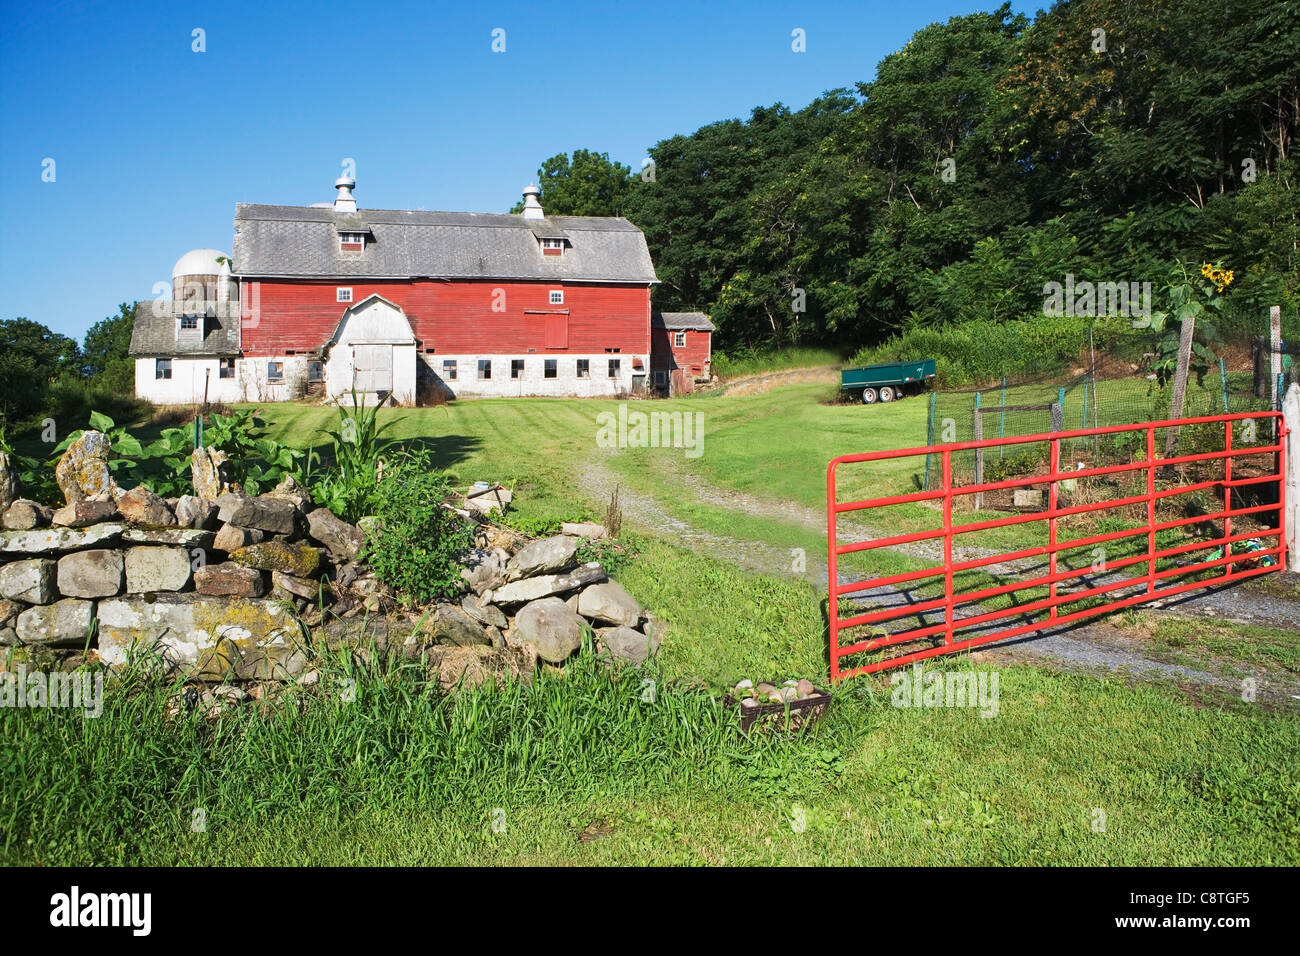 Usa new york state chester barn on countryside stock Usa countryside pictures